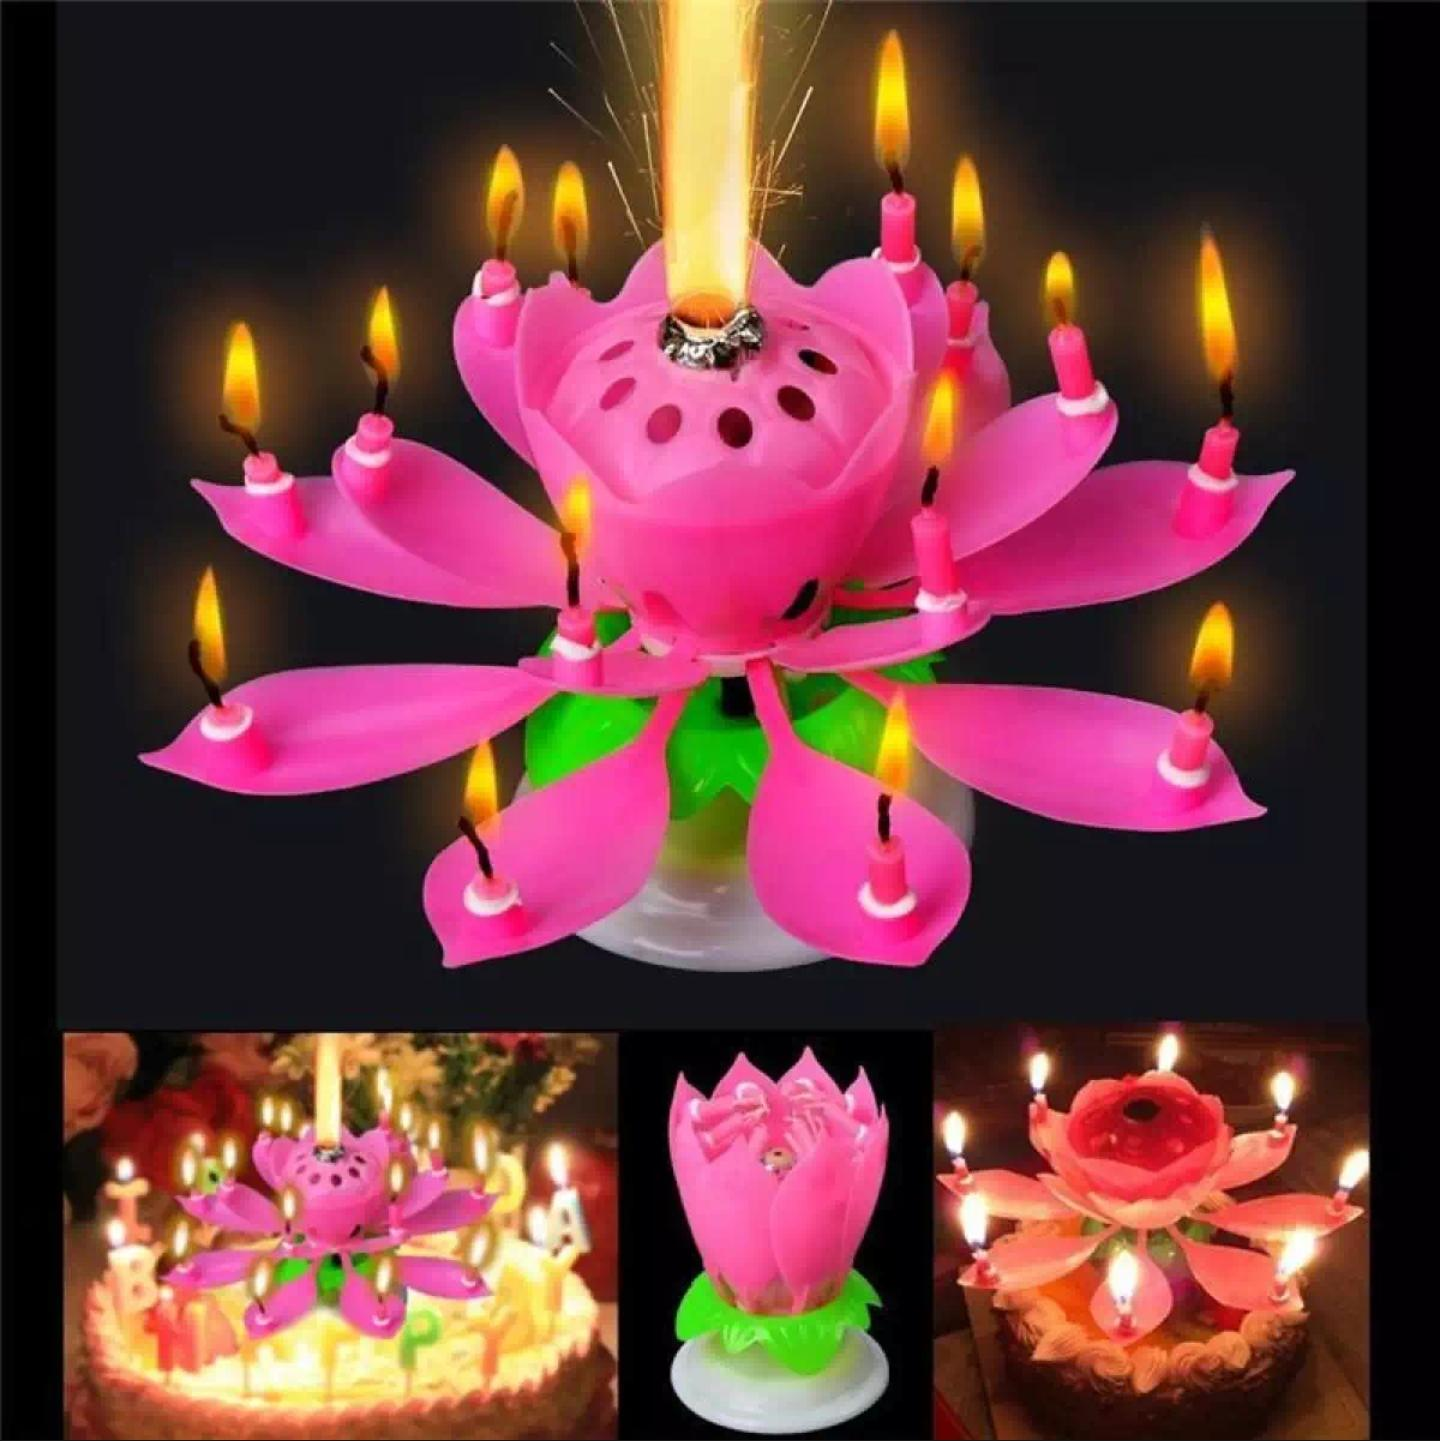 Musical Flower Birthday Cake Candle With Sound Buy Online At Best Prices In Pakistan Daraz Pk